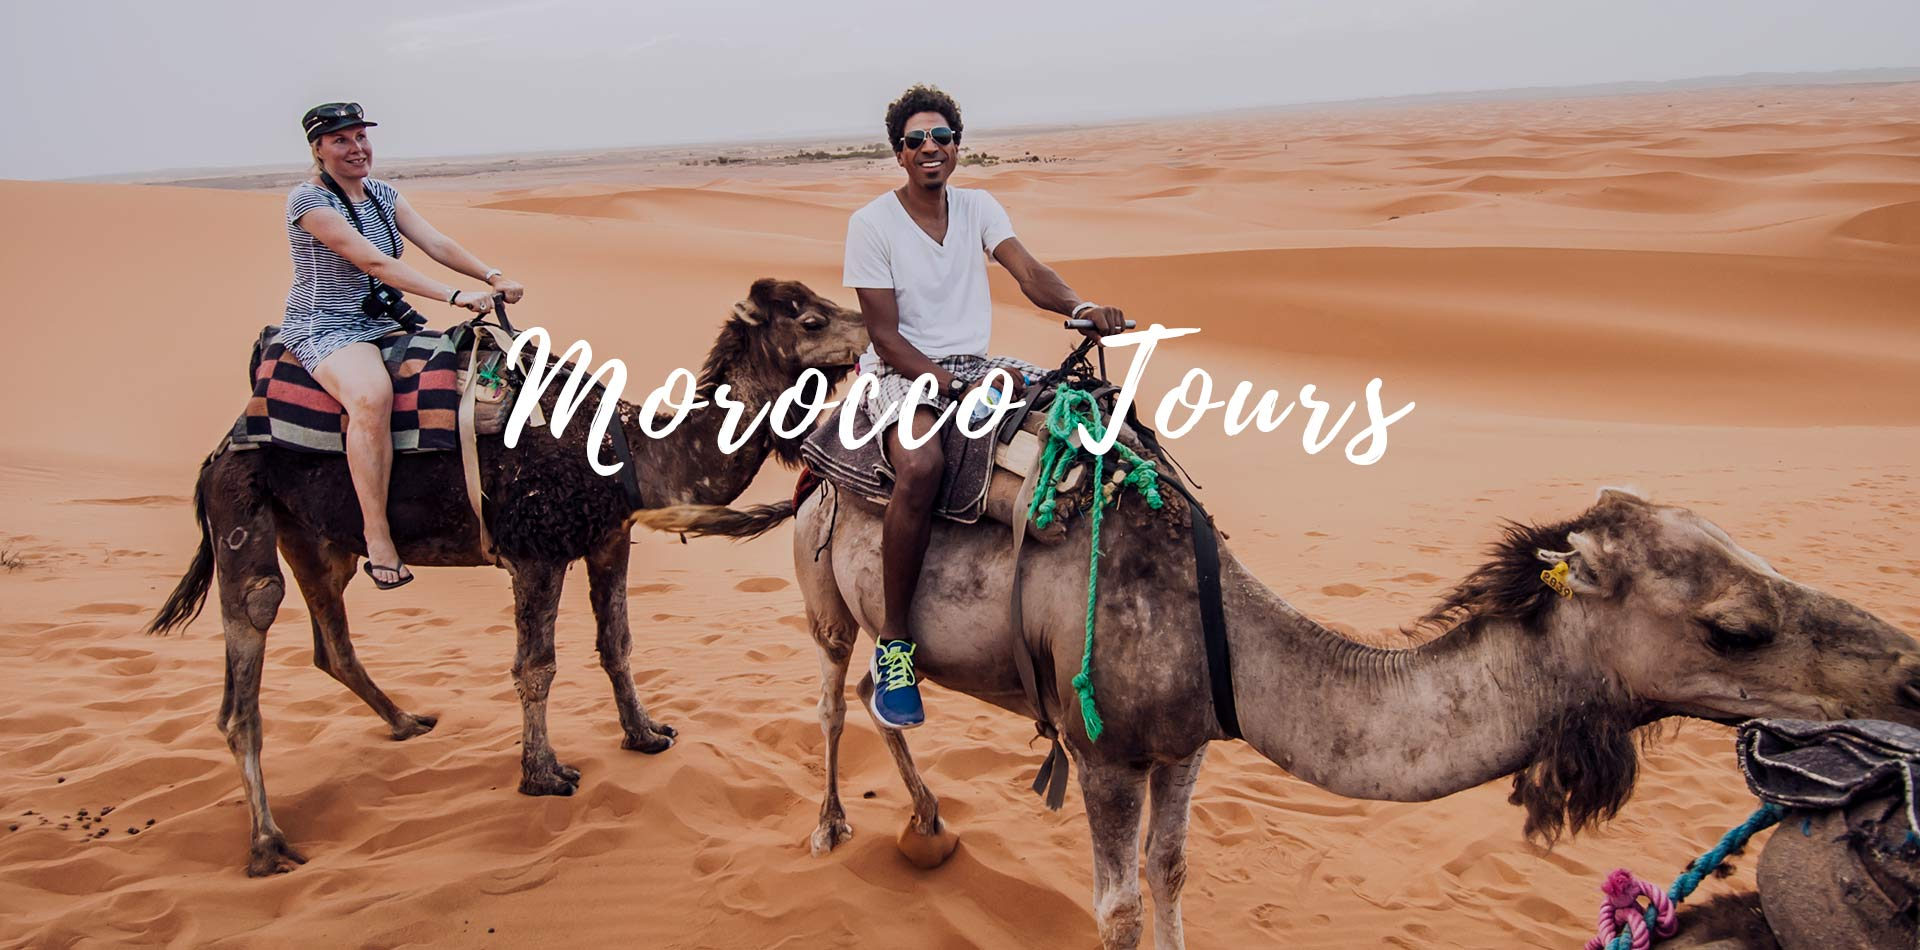 Africa Morocco tours Sahara Desert happy couple smiling riding camels in tan sand dunes - luxury vacation destinations